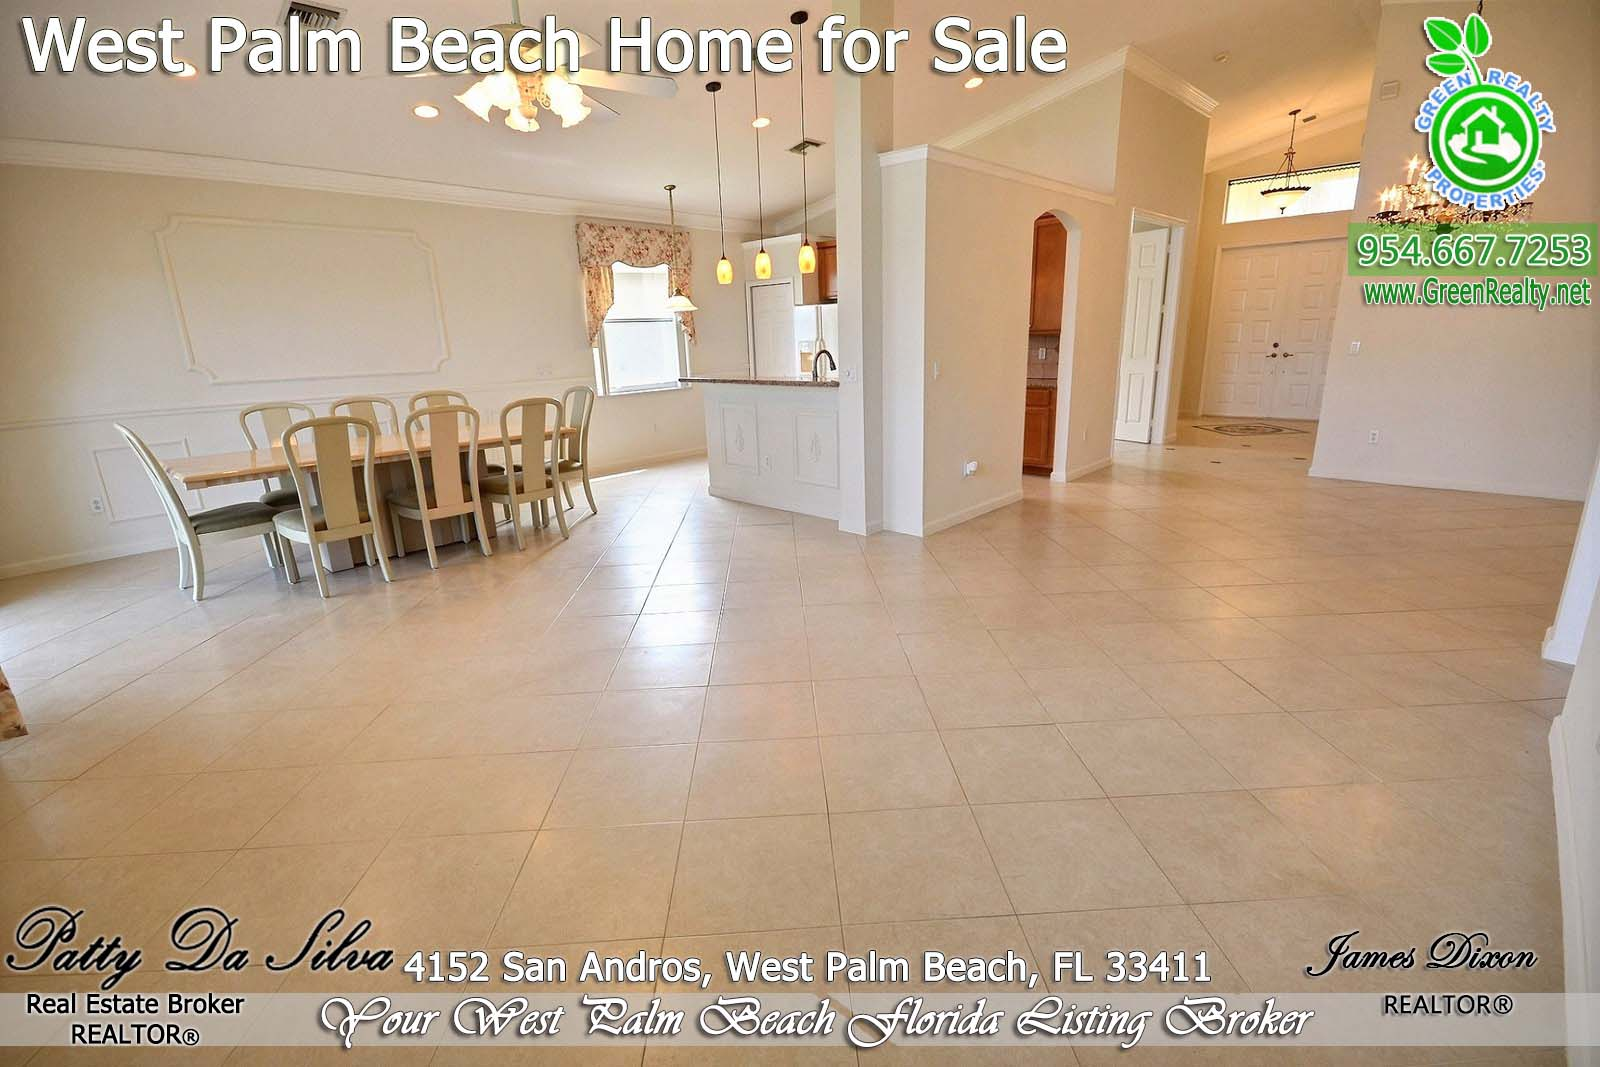 West Palm Beach Real Estate - 4152 San Andros (10)_1